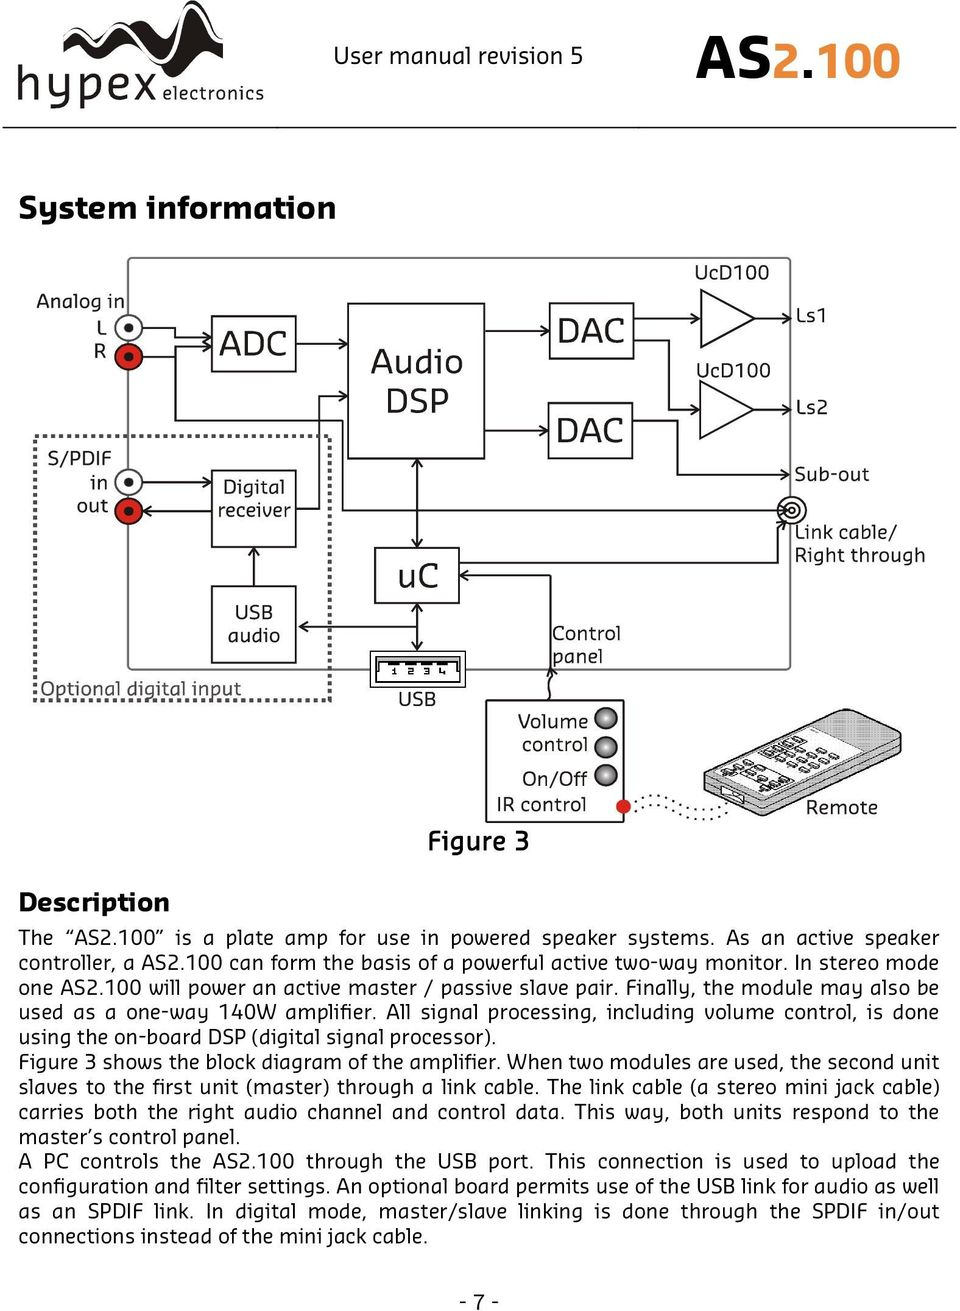 User Manual As2100 Hypex As2 Series Pdf Digital Classd Amp Circuit Pcb Schematic All Files Alternative Links Signal Processing Including Volume Control Is Done Using The On Board Dsp